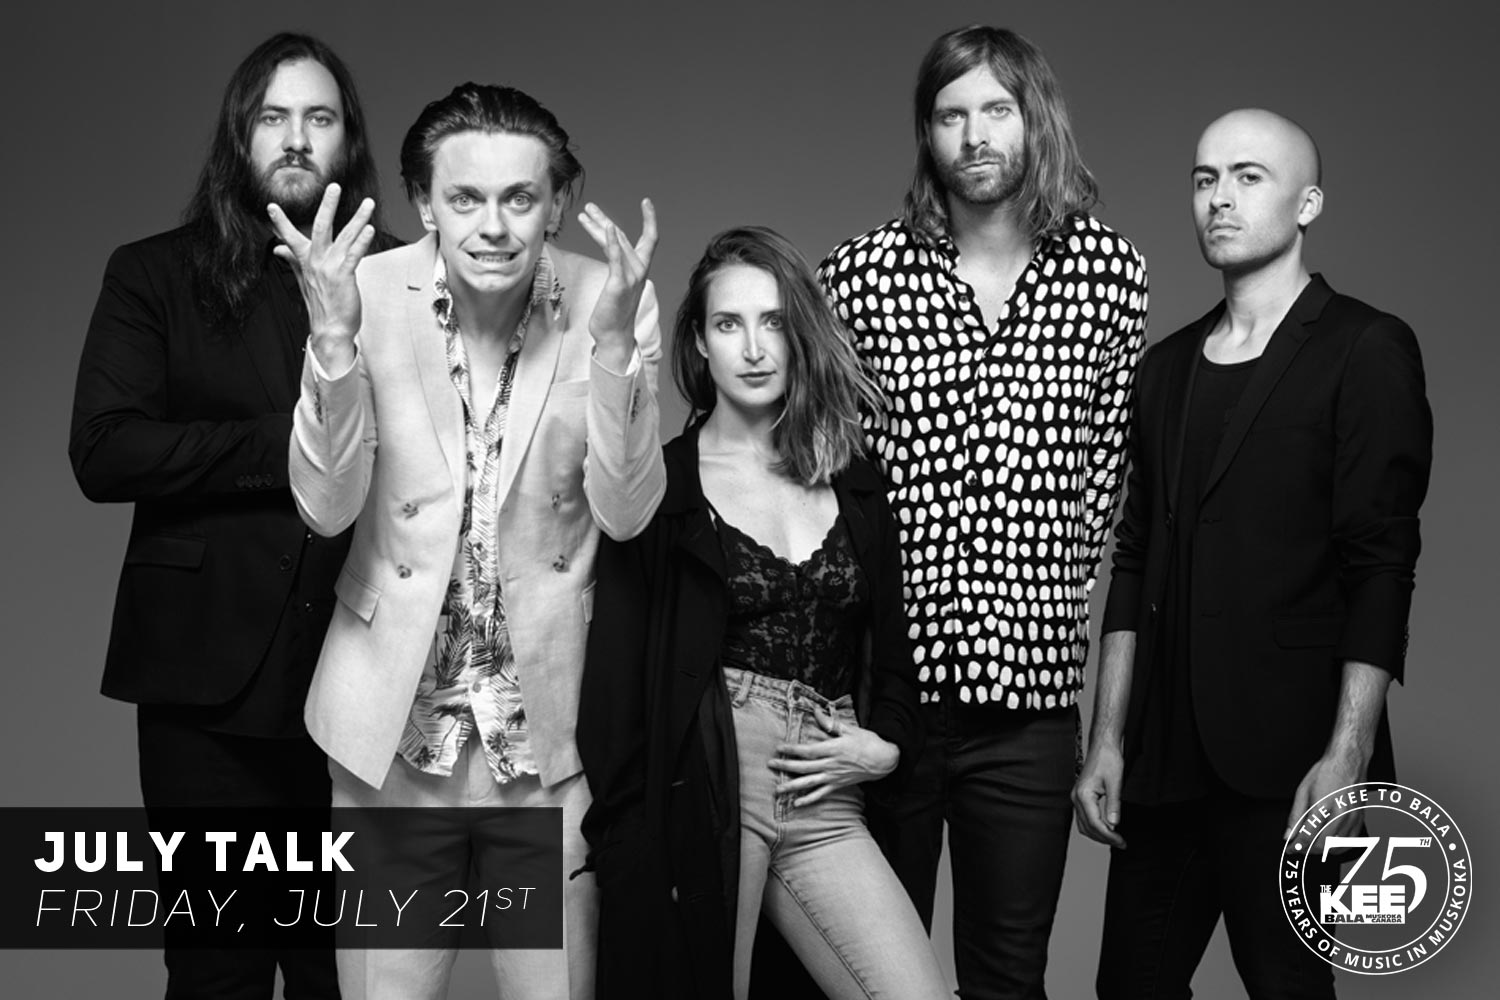 July Talk at The KEE